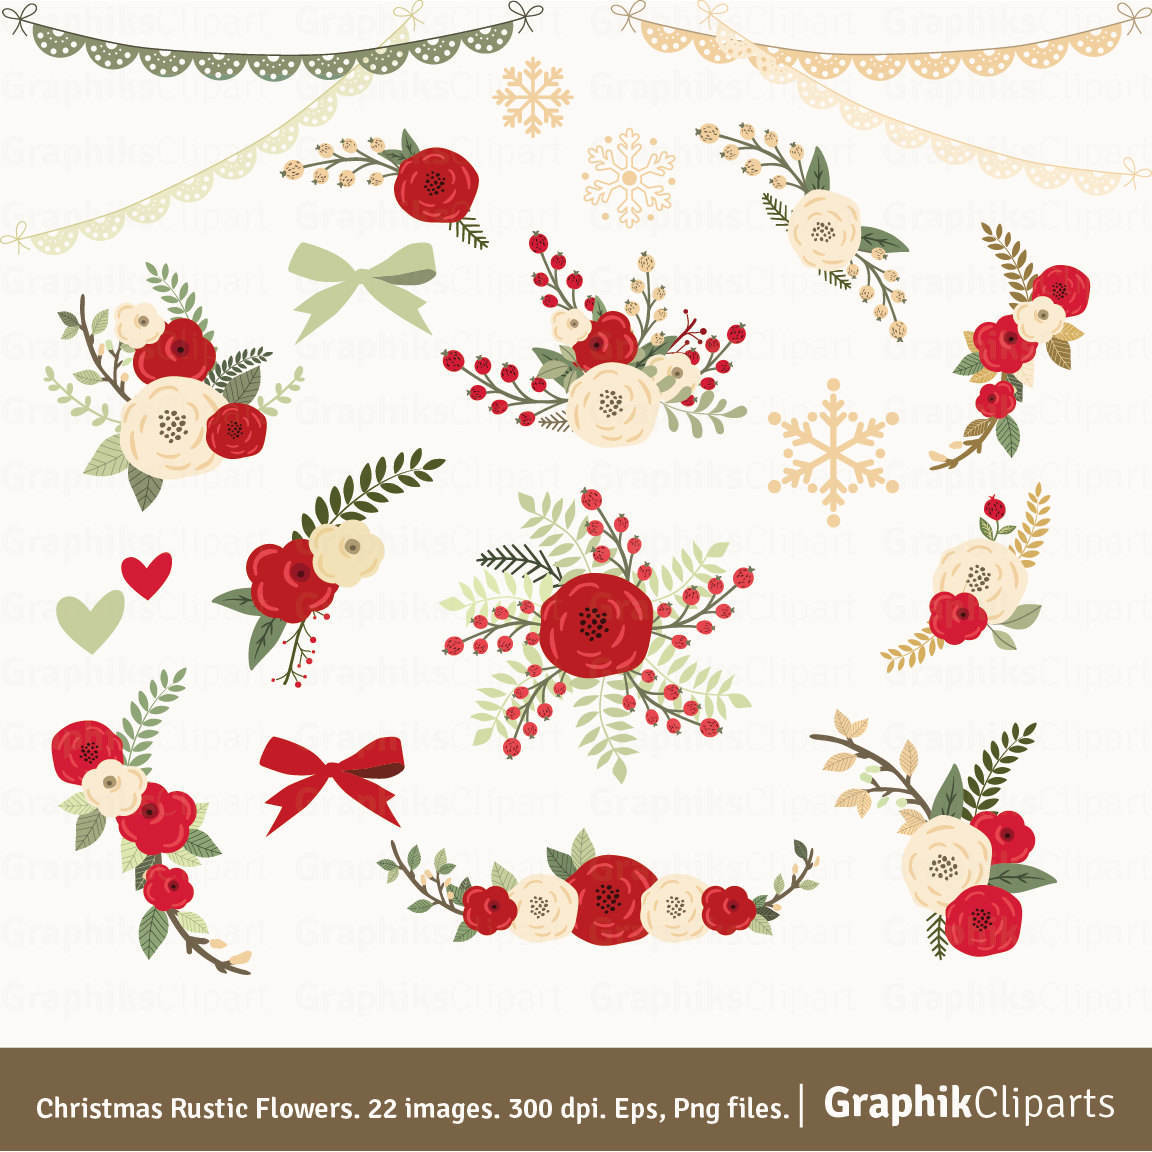 Christmas Rustic Flowers Clipart. Floral by Graphikcliparts.